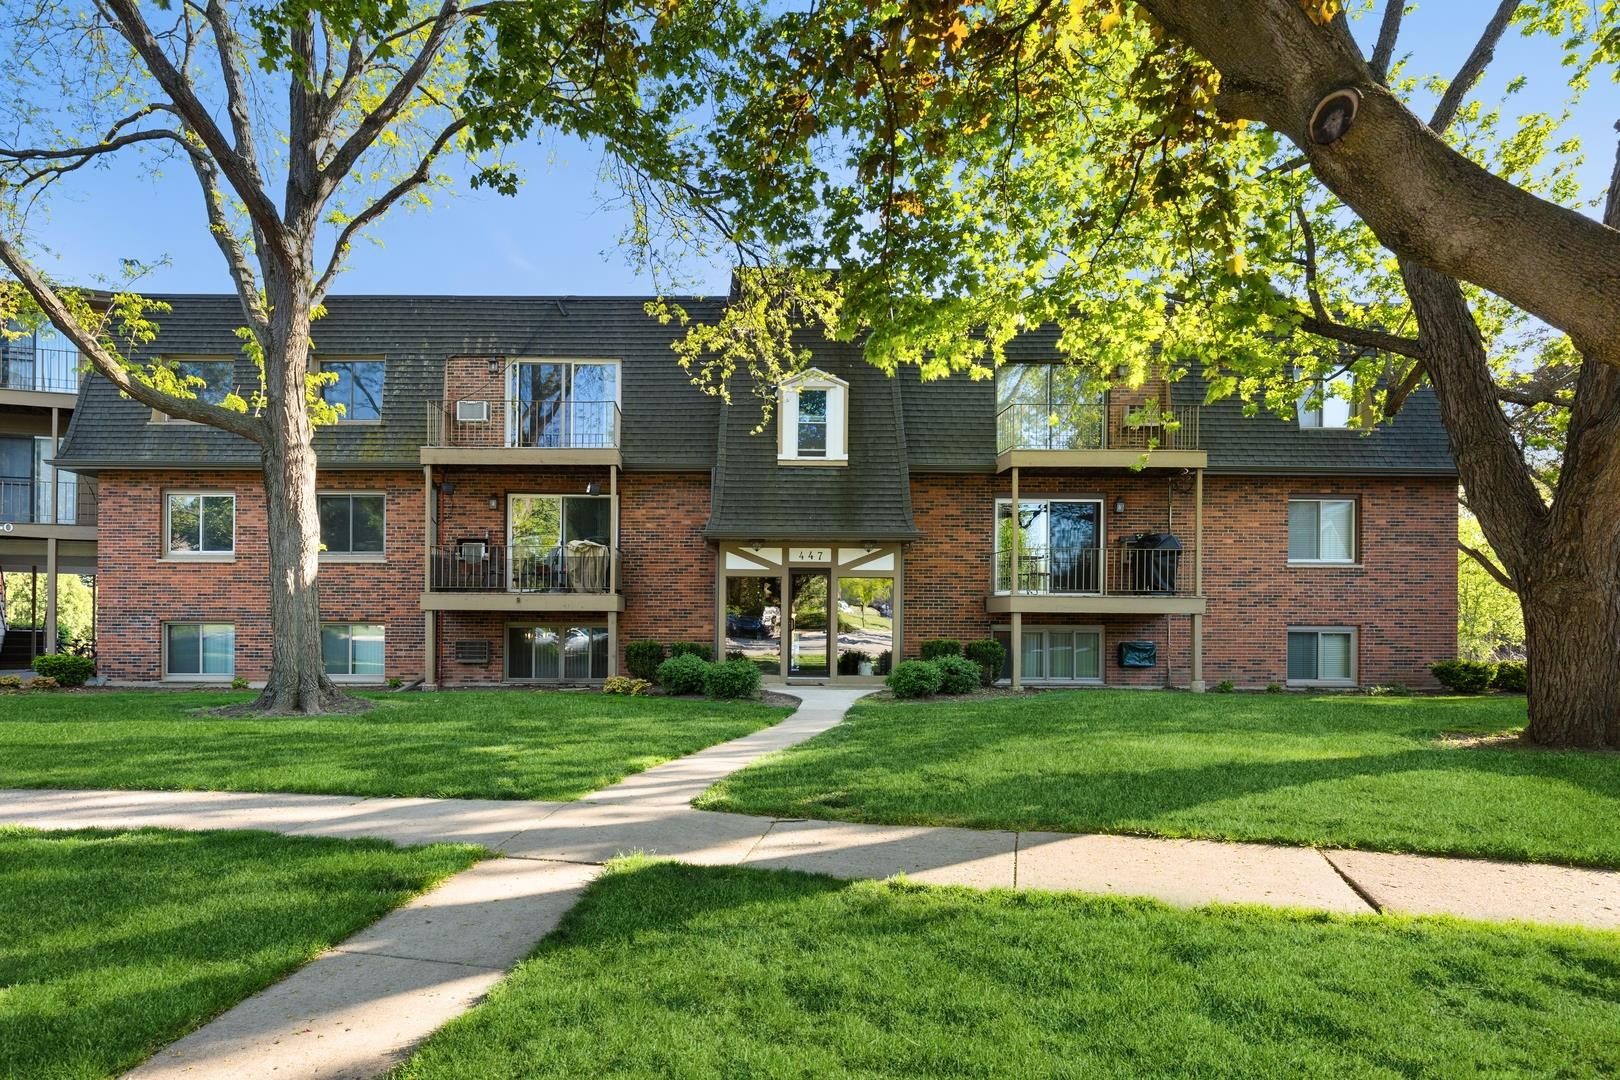 447 Cavalier Court #1-8, West Dundee, IL 60118 - #: 11077651